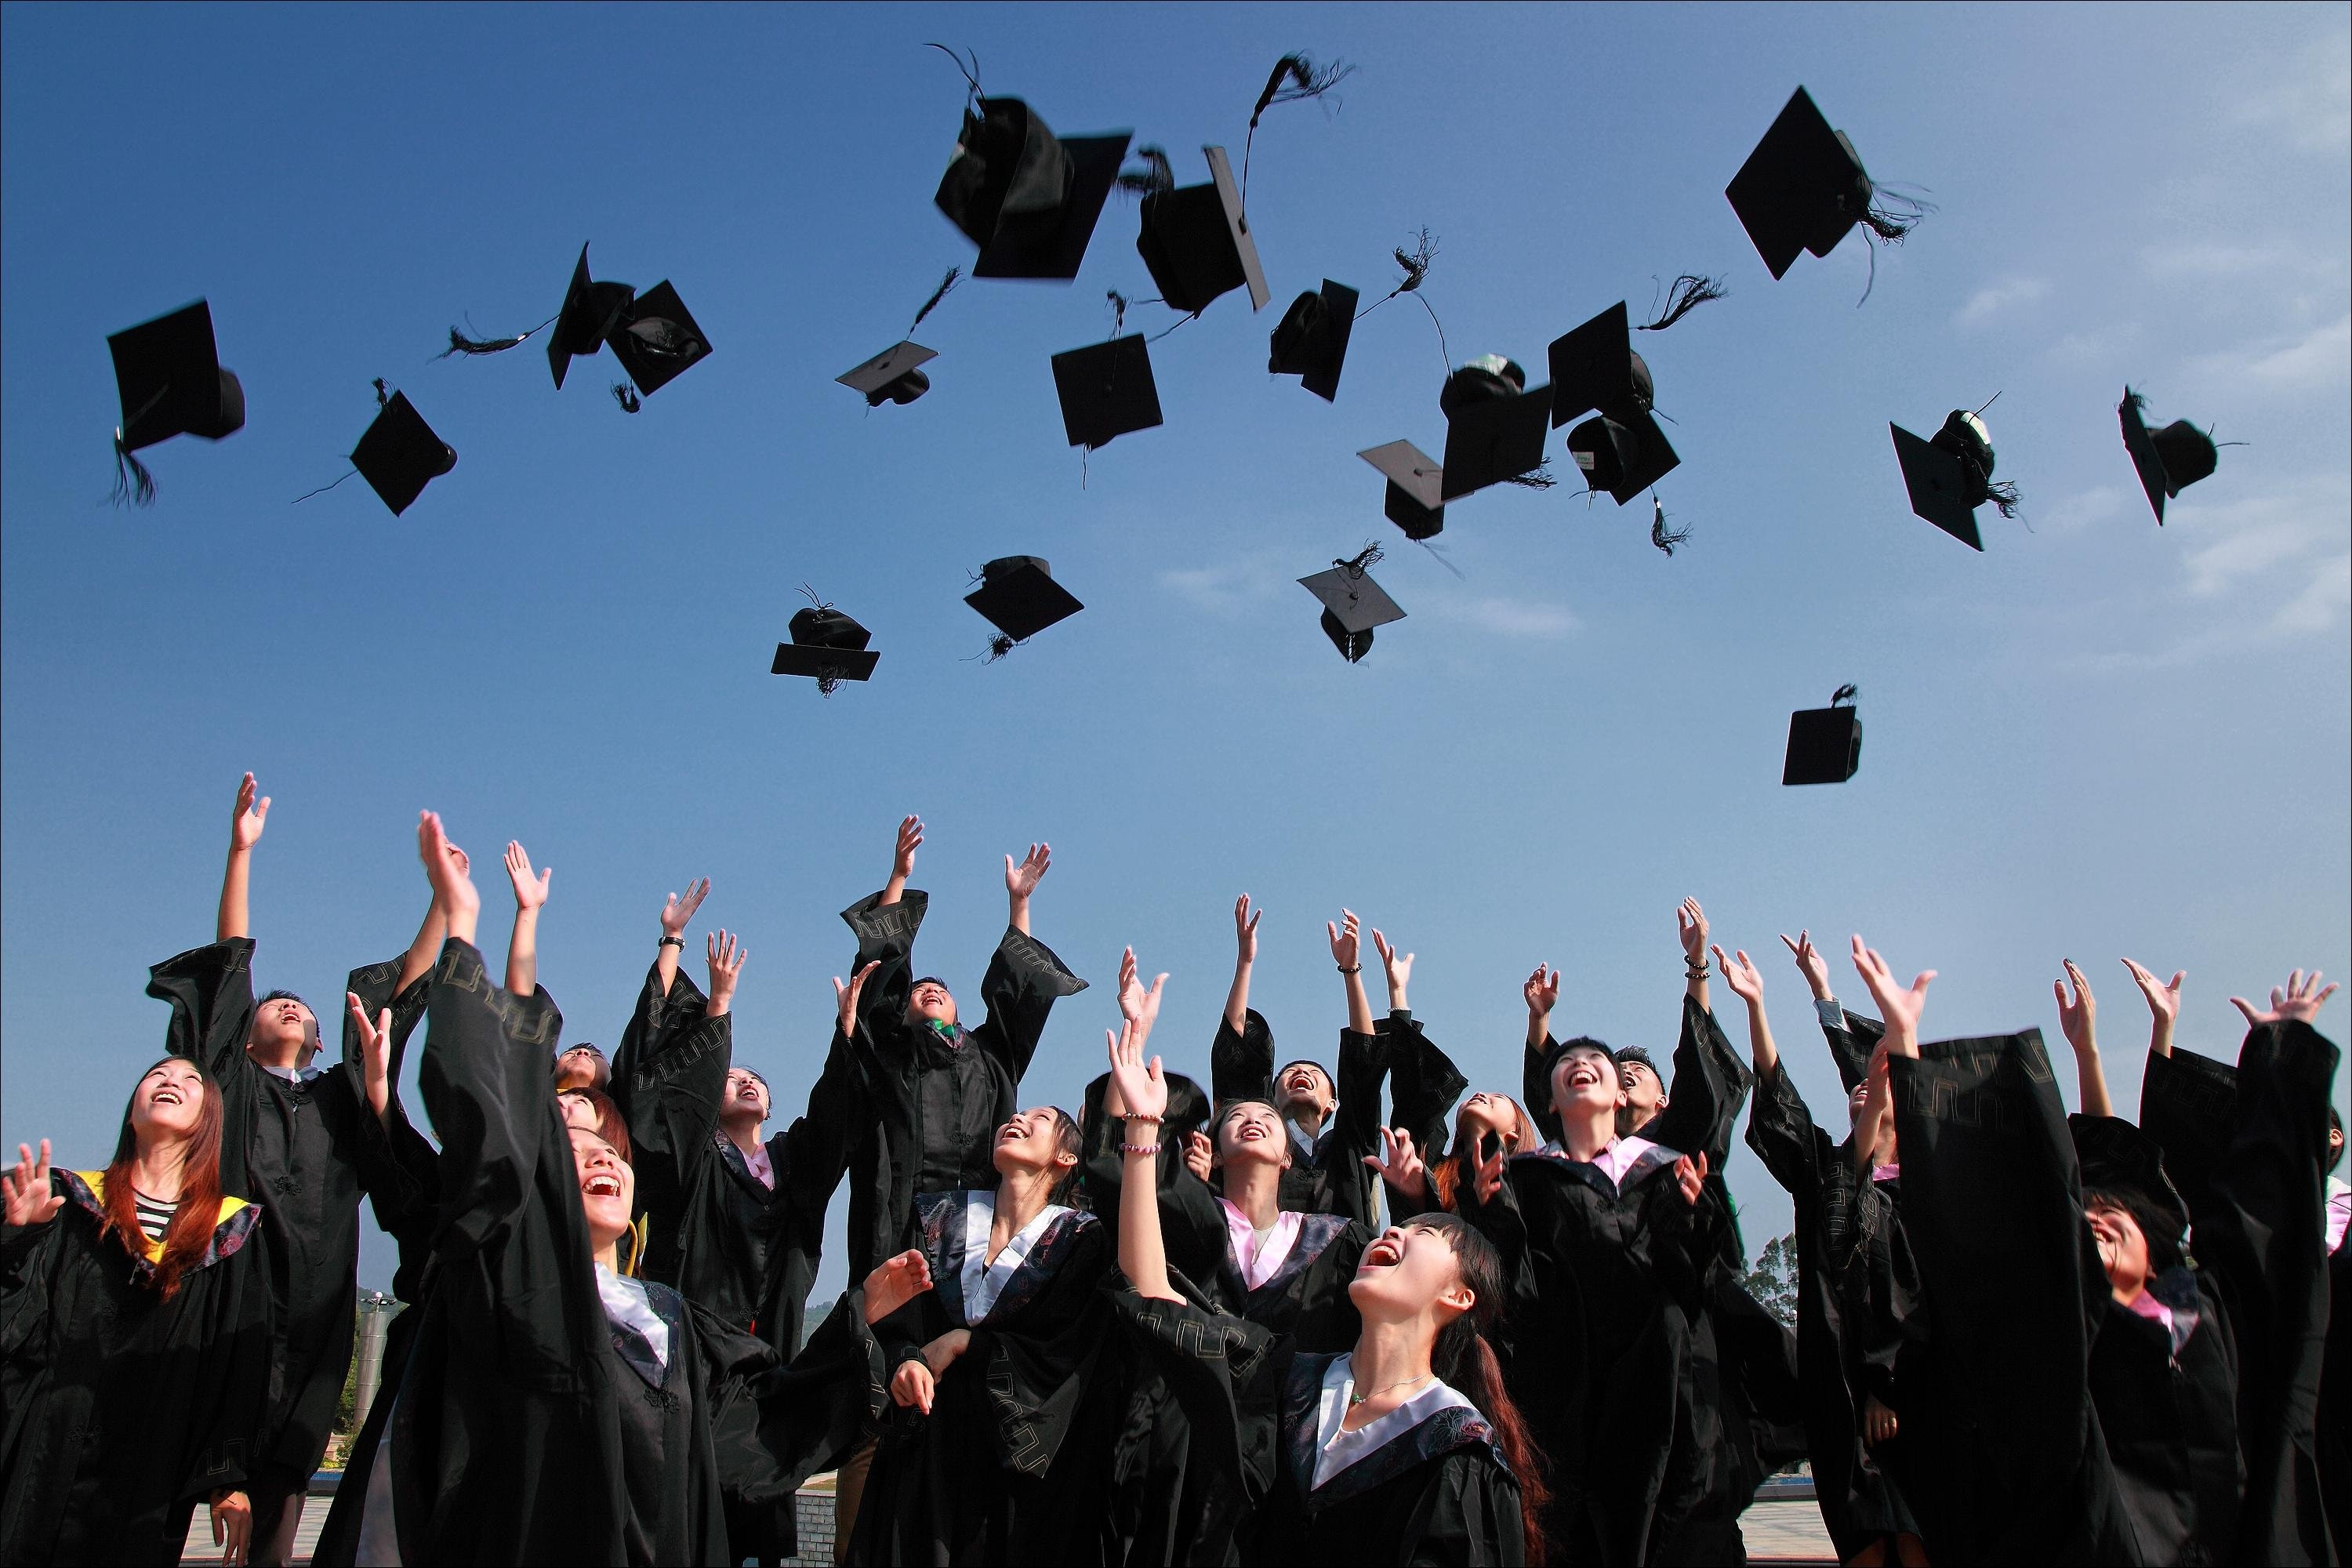 Graduation leaves more than hats in the air. Navigating the future is more complex for recent college graduates.